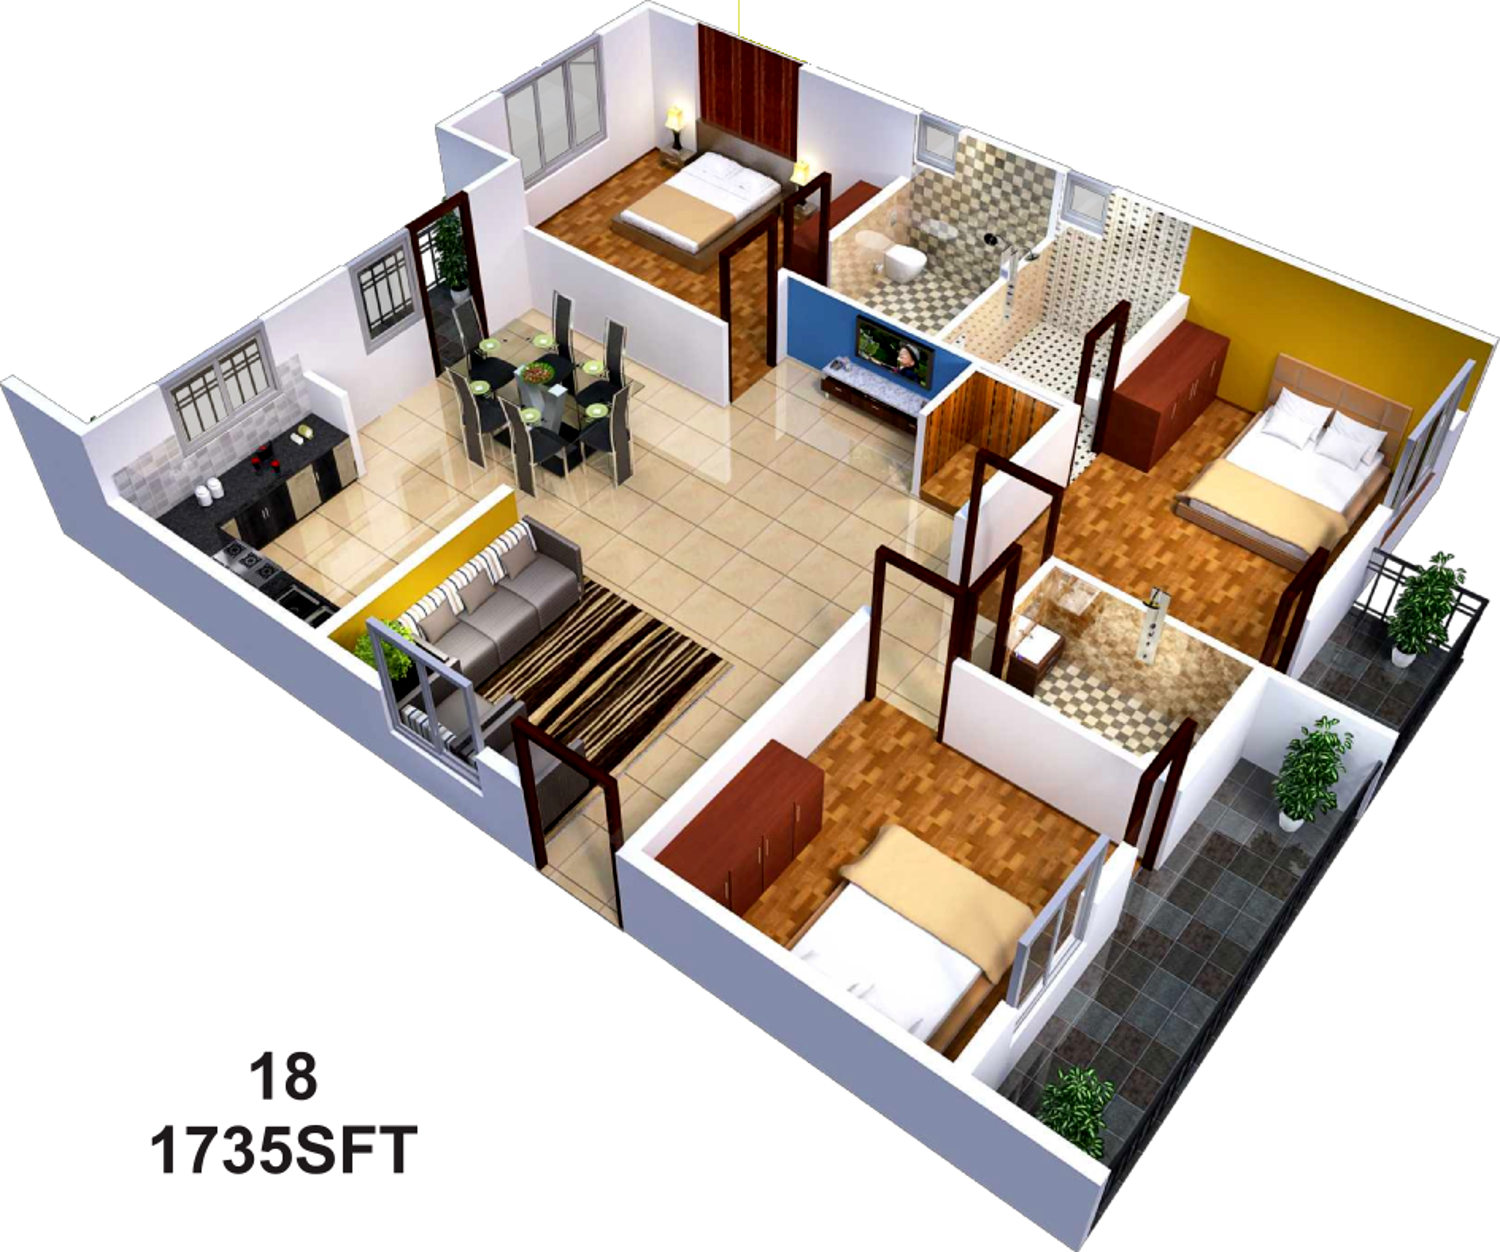 Sumukha telecom clusters in banashankari bangalore price location map floor plan reviews for Cost to paint 1500 sq ft house interior